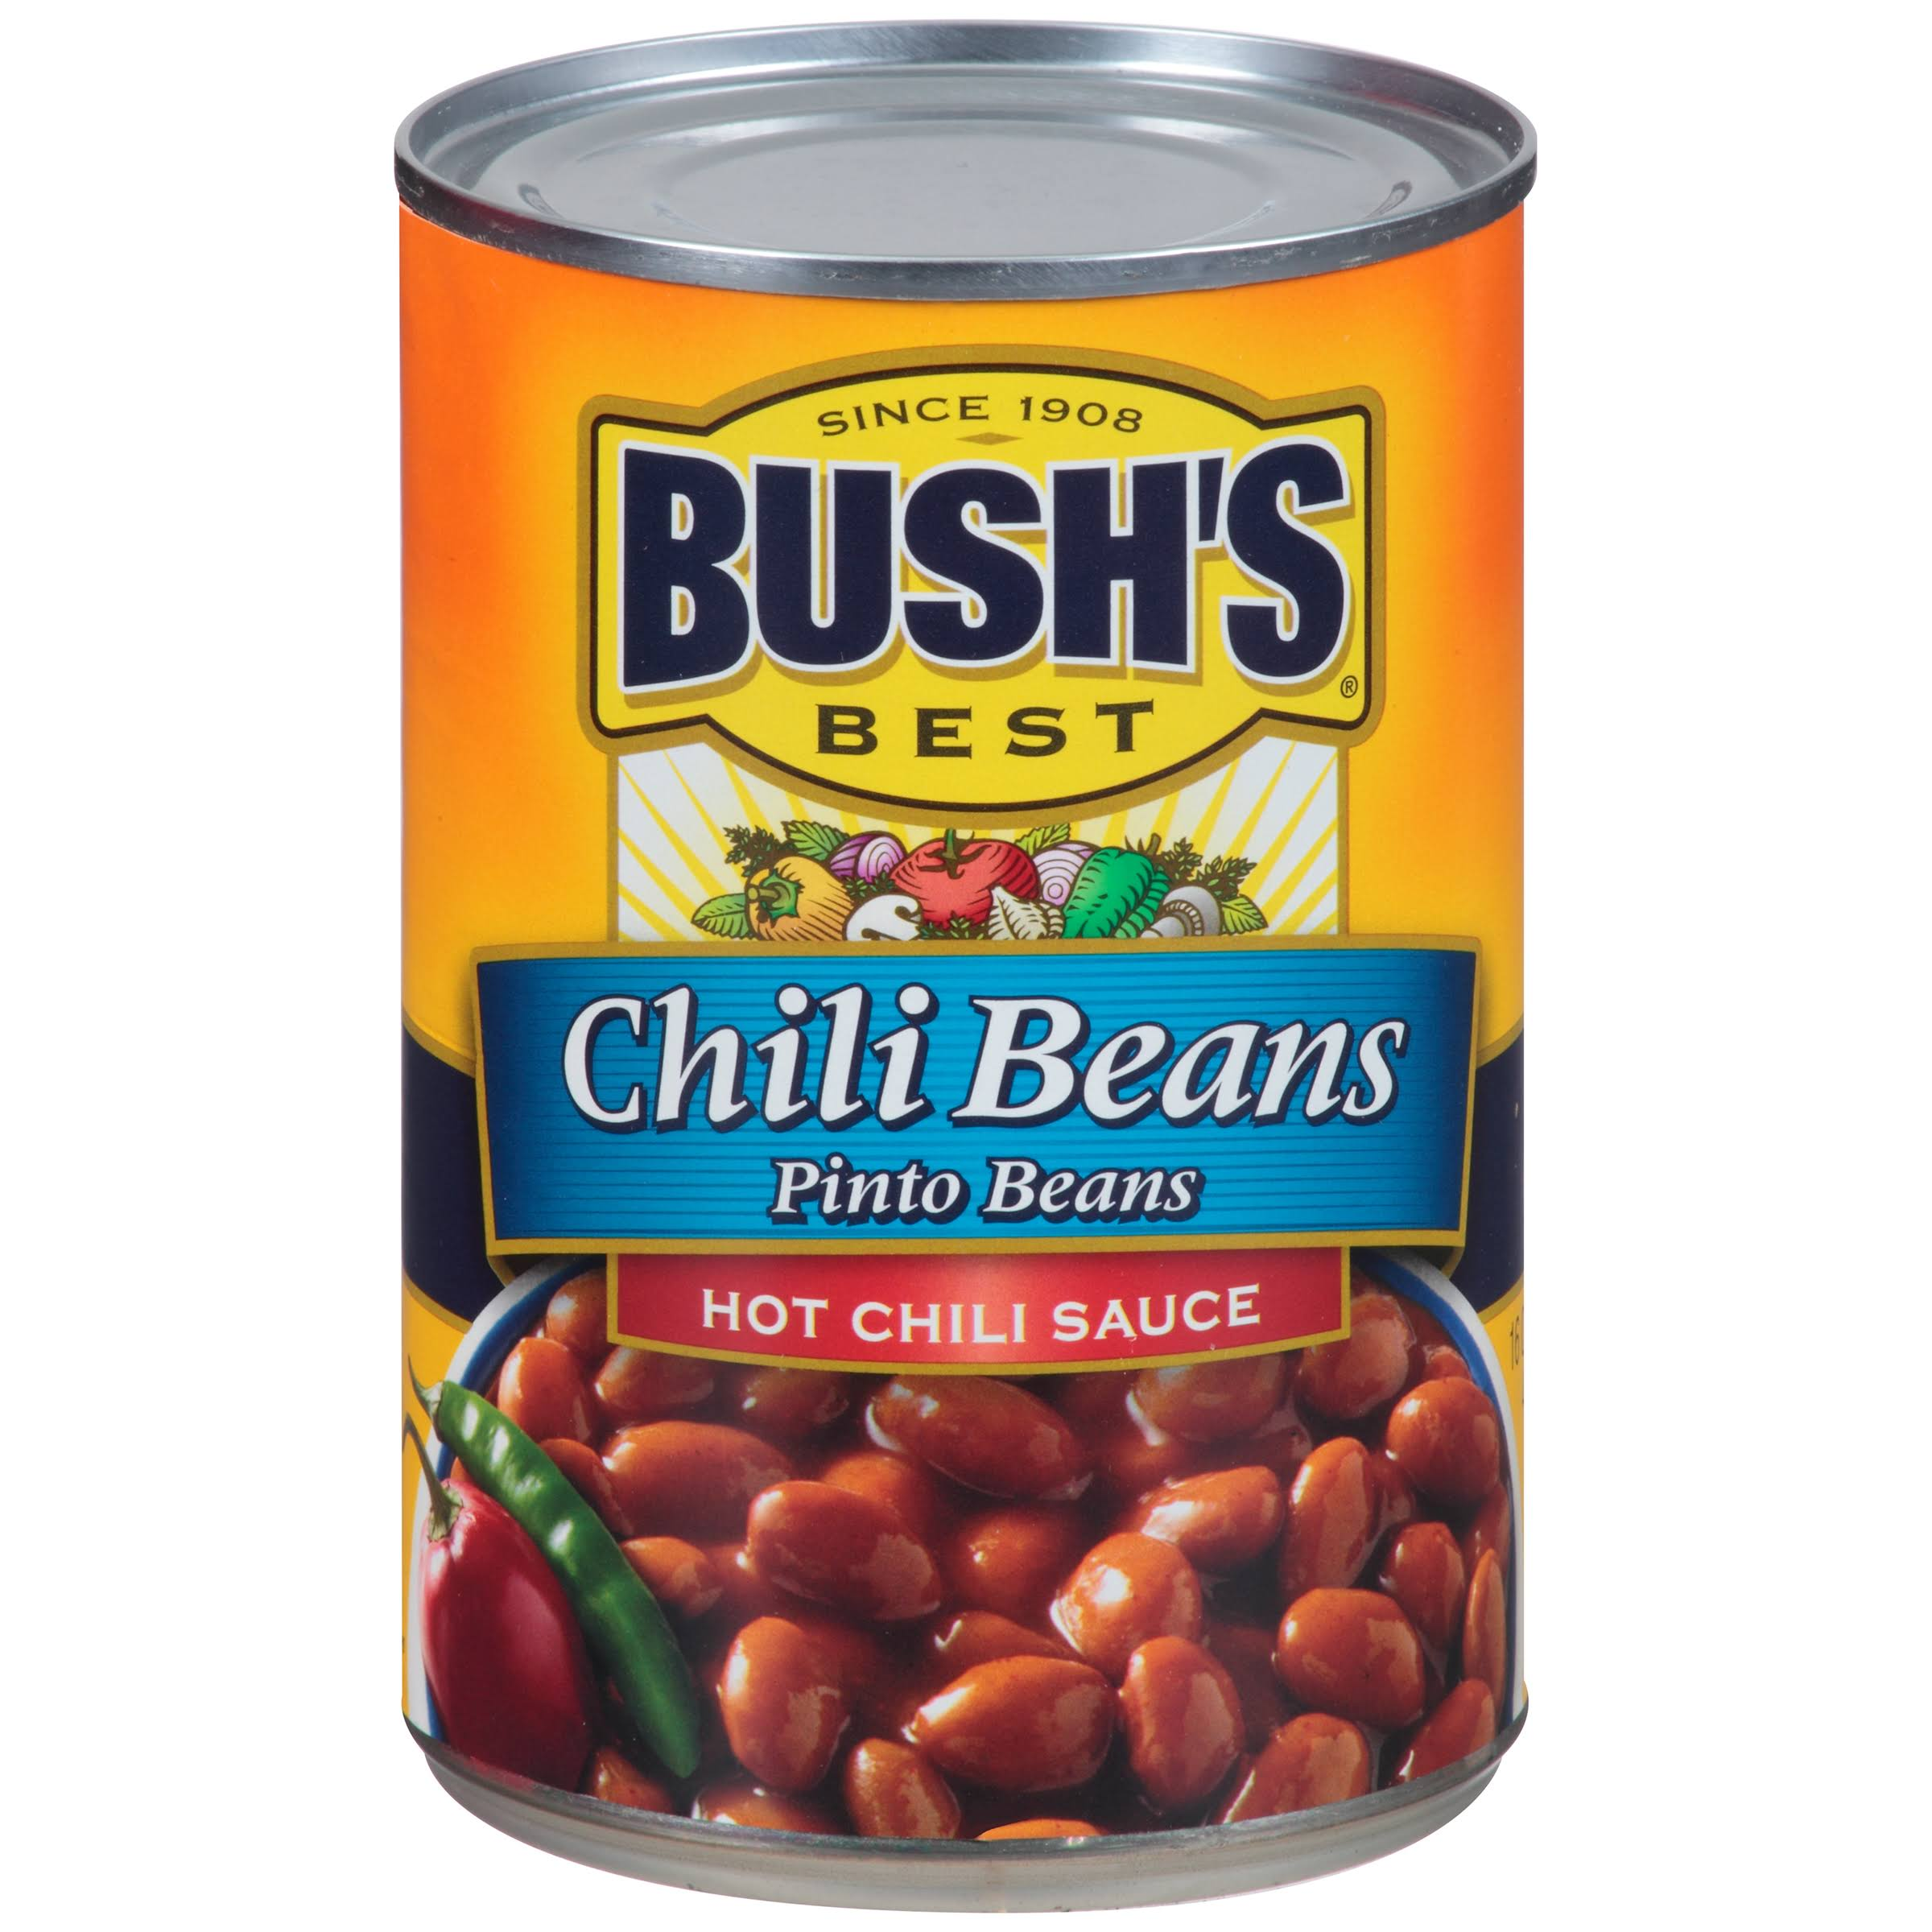 Bush's Best Pinto Chili Beans - Hot Chili Sauce, 16oz, 12ct